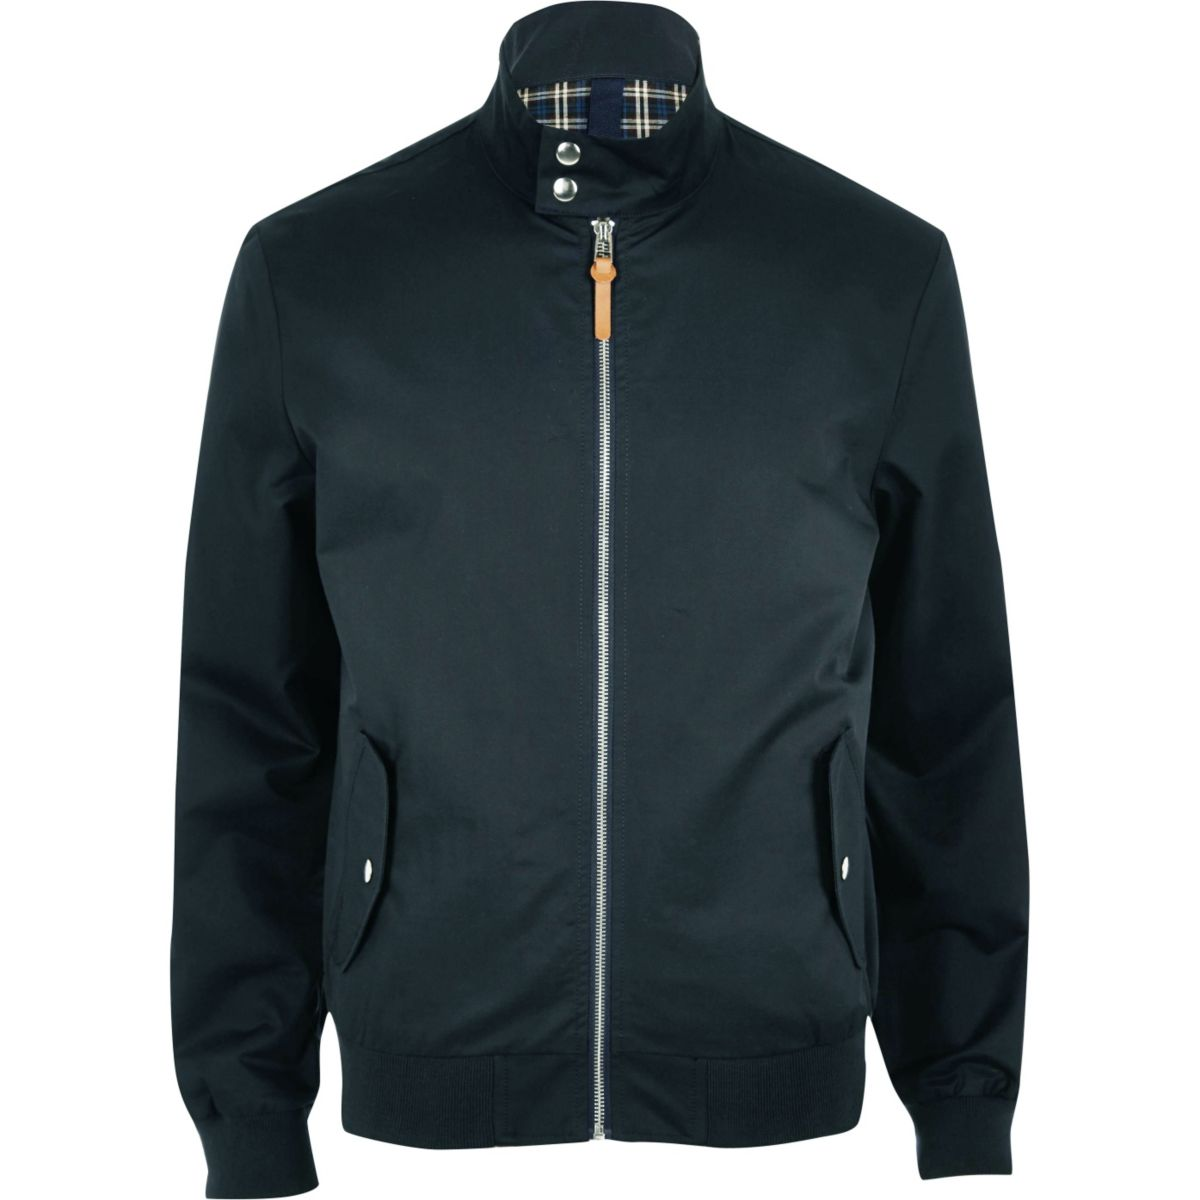 Navy funnel neck harrington jacket